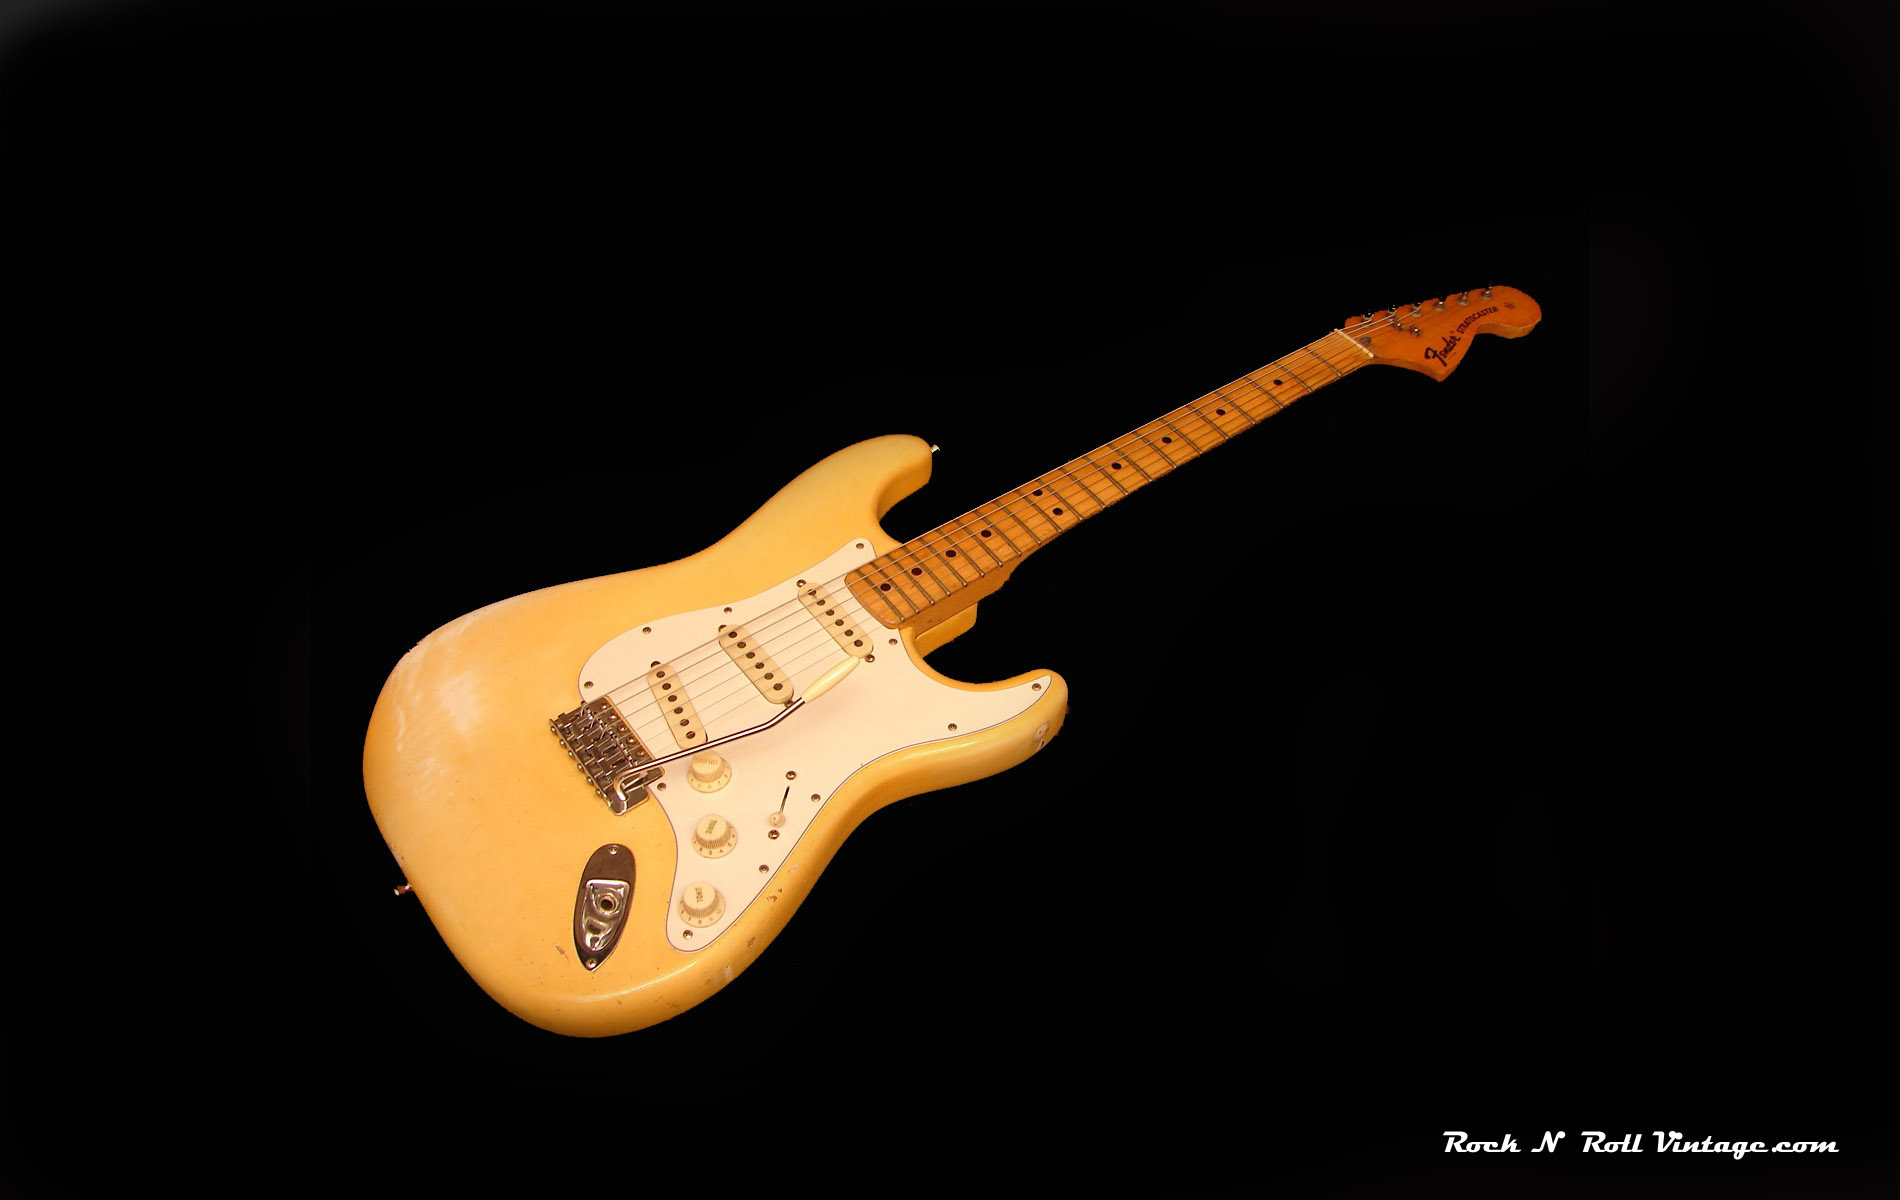 Pc wallpaper guitar photos free for pc backgrounds - Fender stratocaster wallpaper hd ...